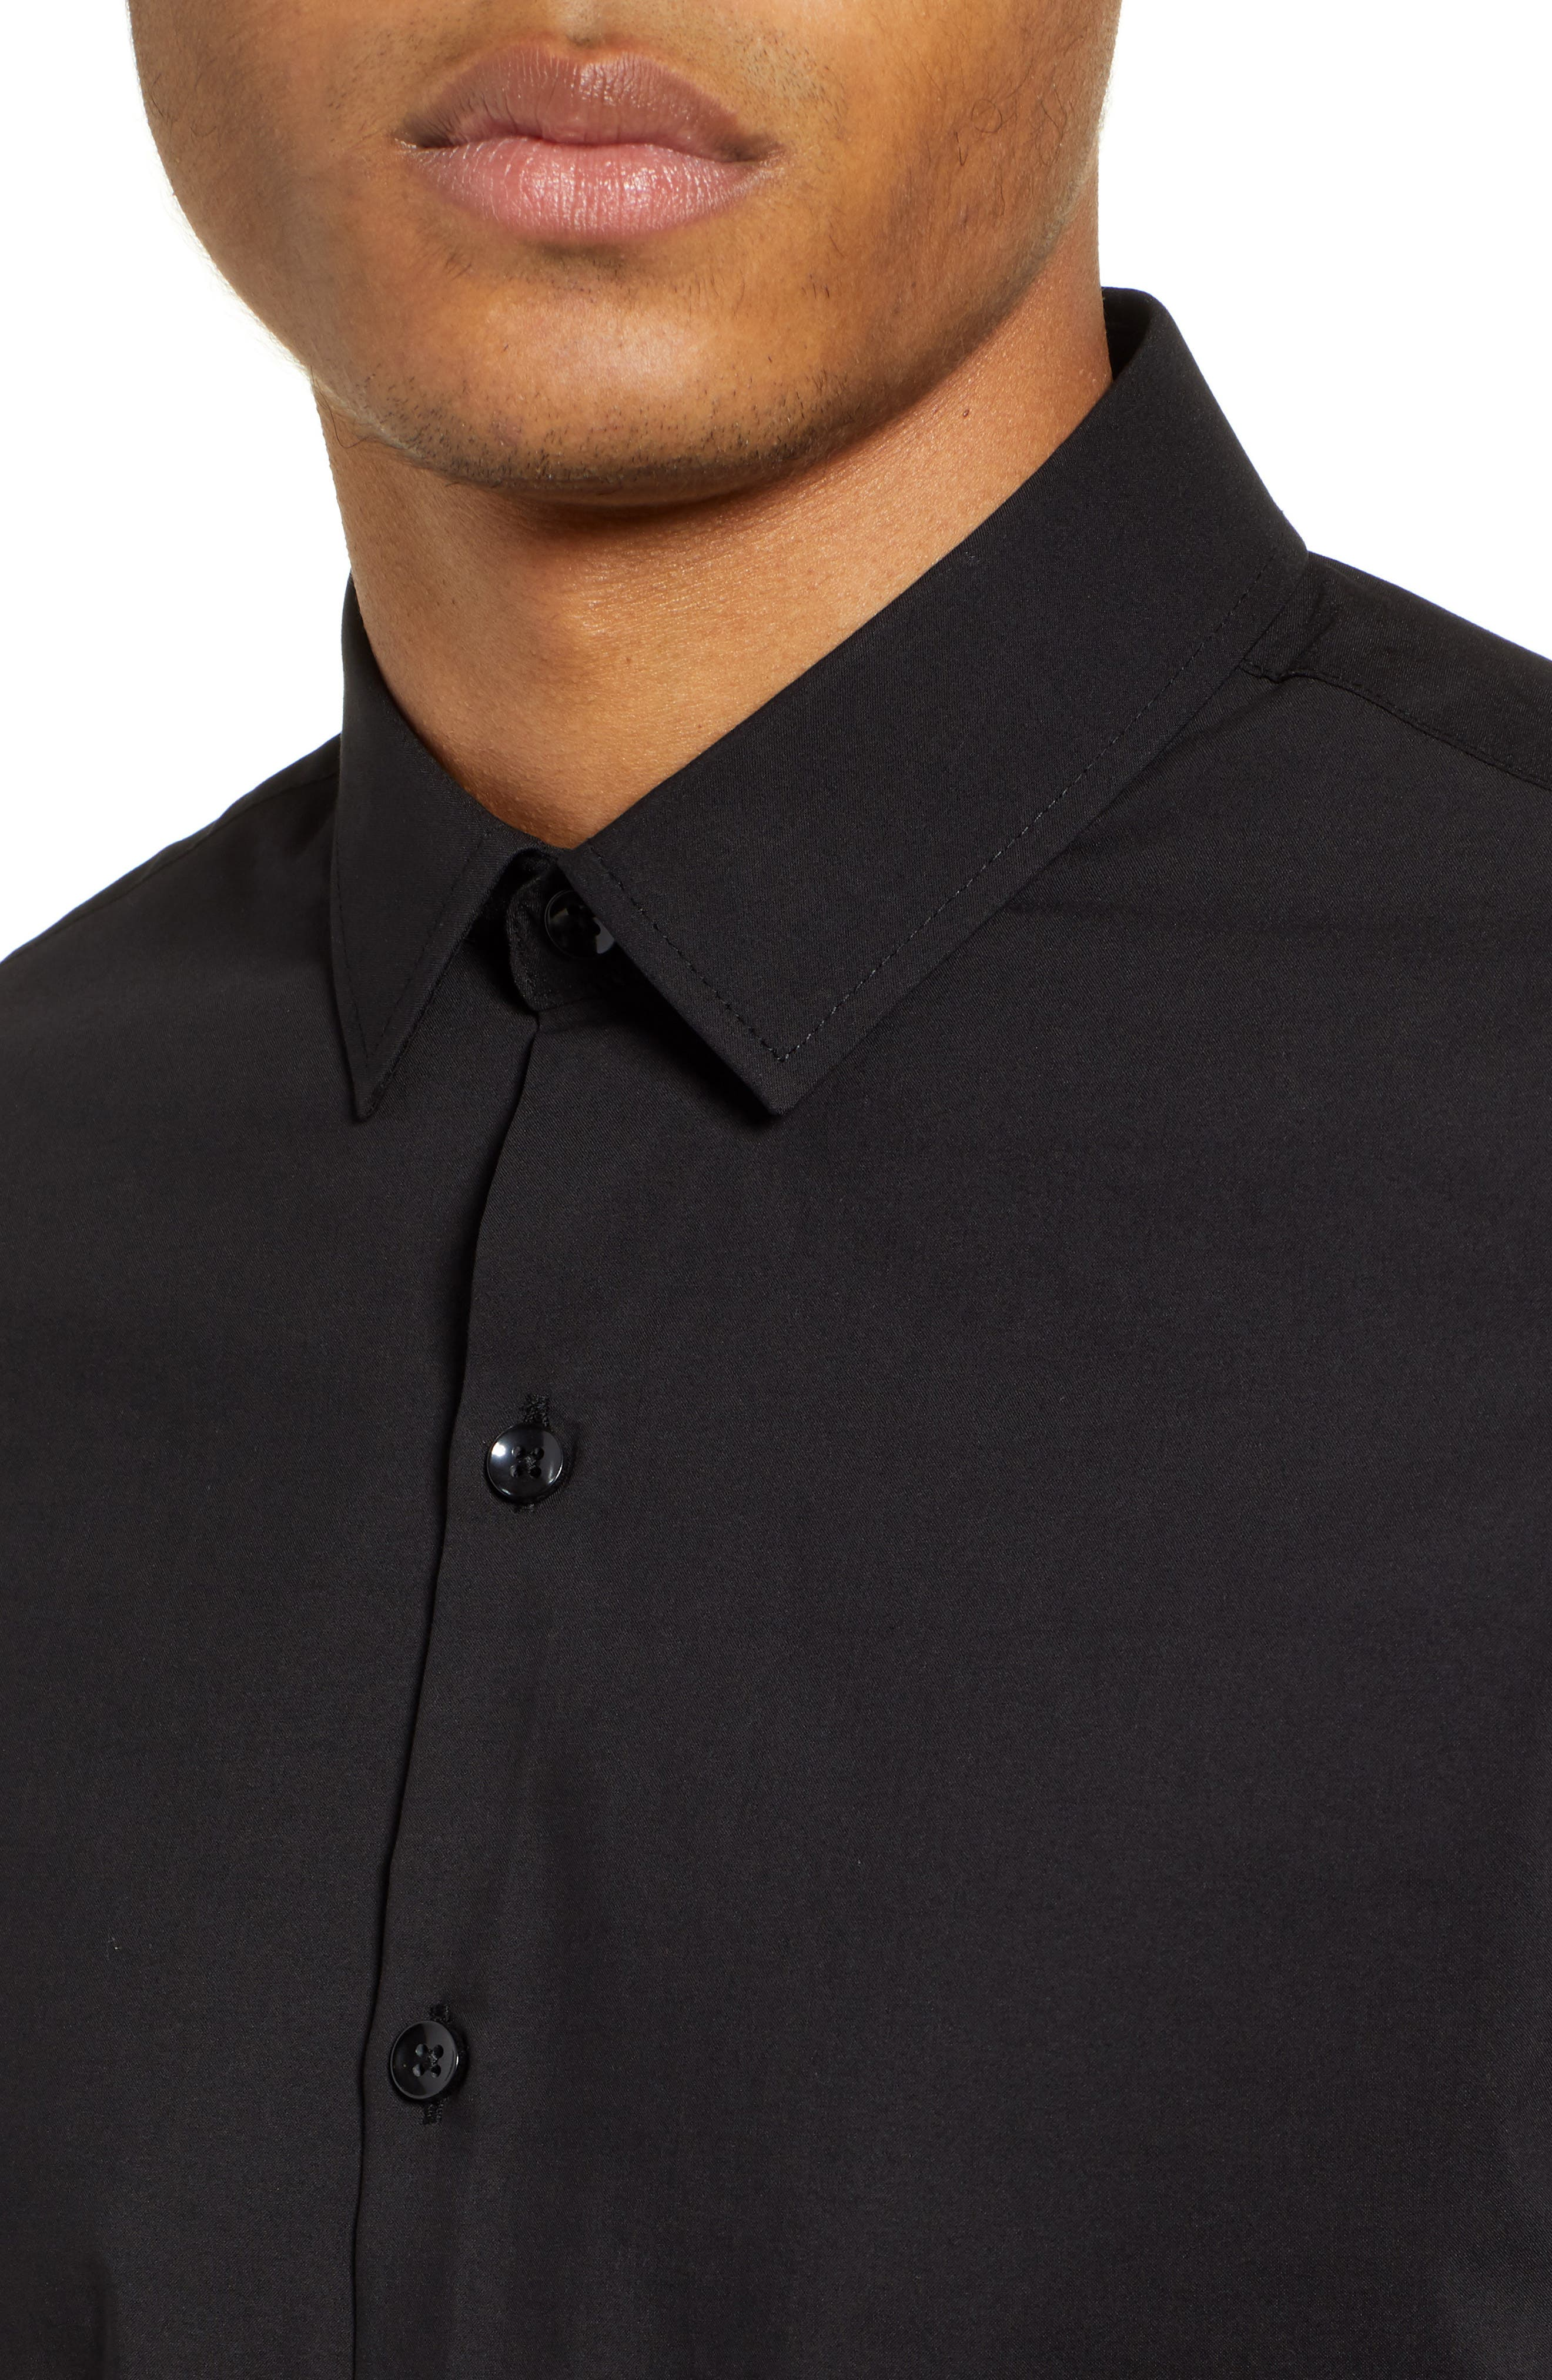 Stretch Woven Shirt,                             Alternate thumbnail 2, color,                             BLACK